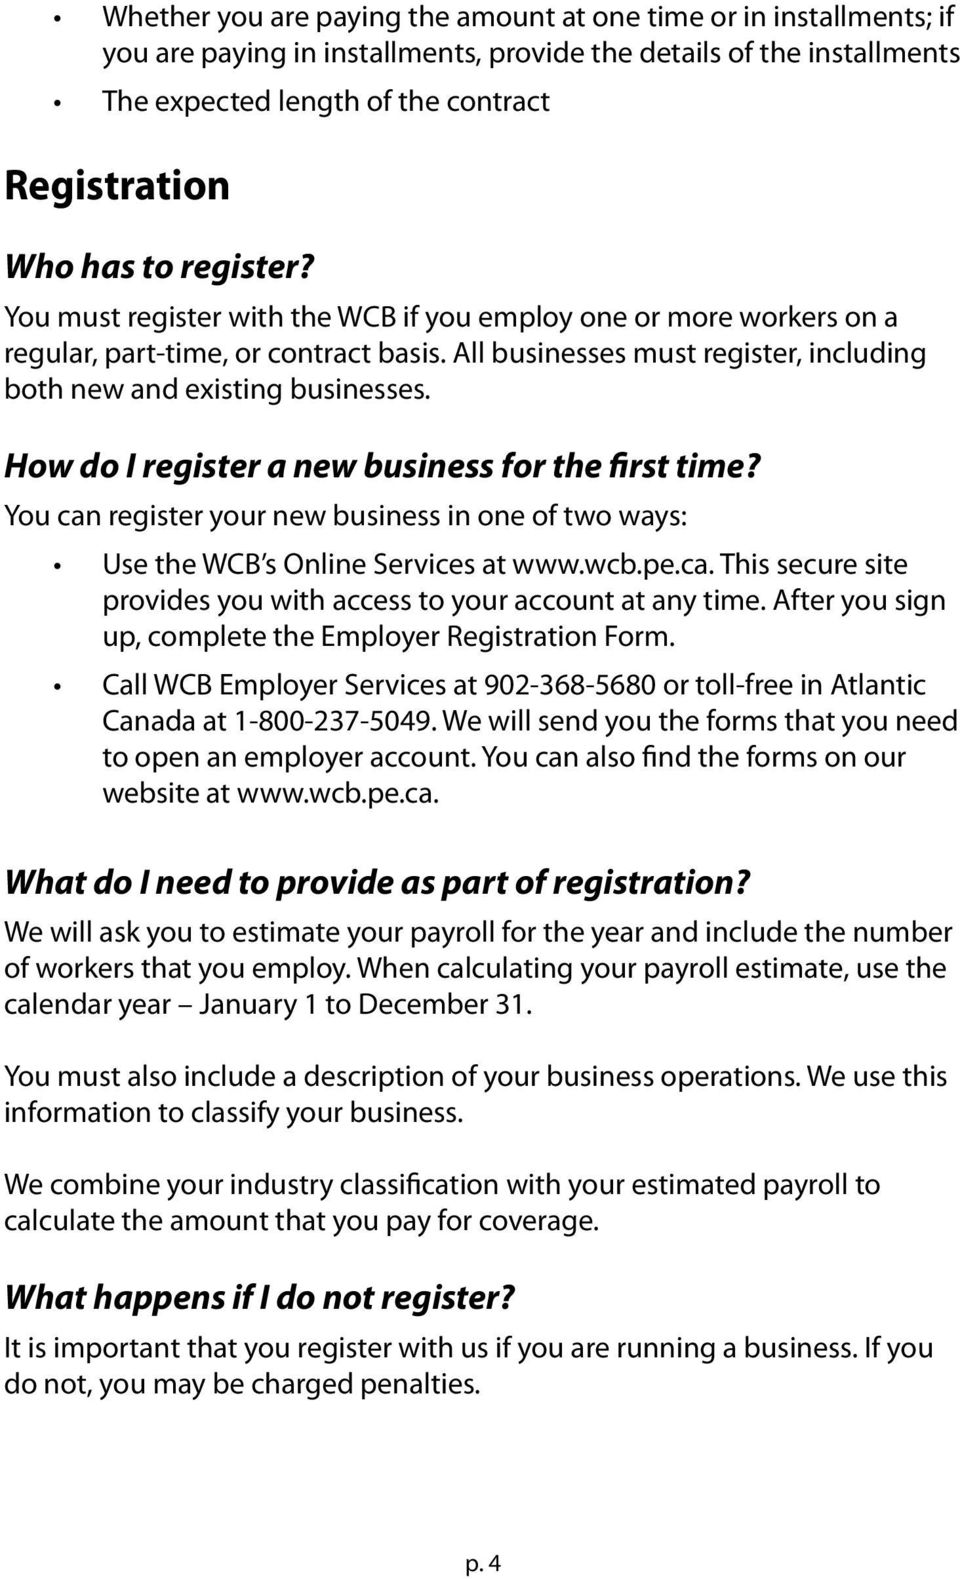 How do I register a new business for the first time? You can register your new business in one of two ways: Use the WCB s Online Services at www.wcb.pe.ca. This secure site provides you with access to your account at any time.